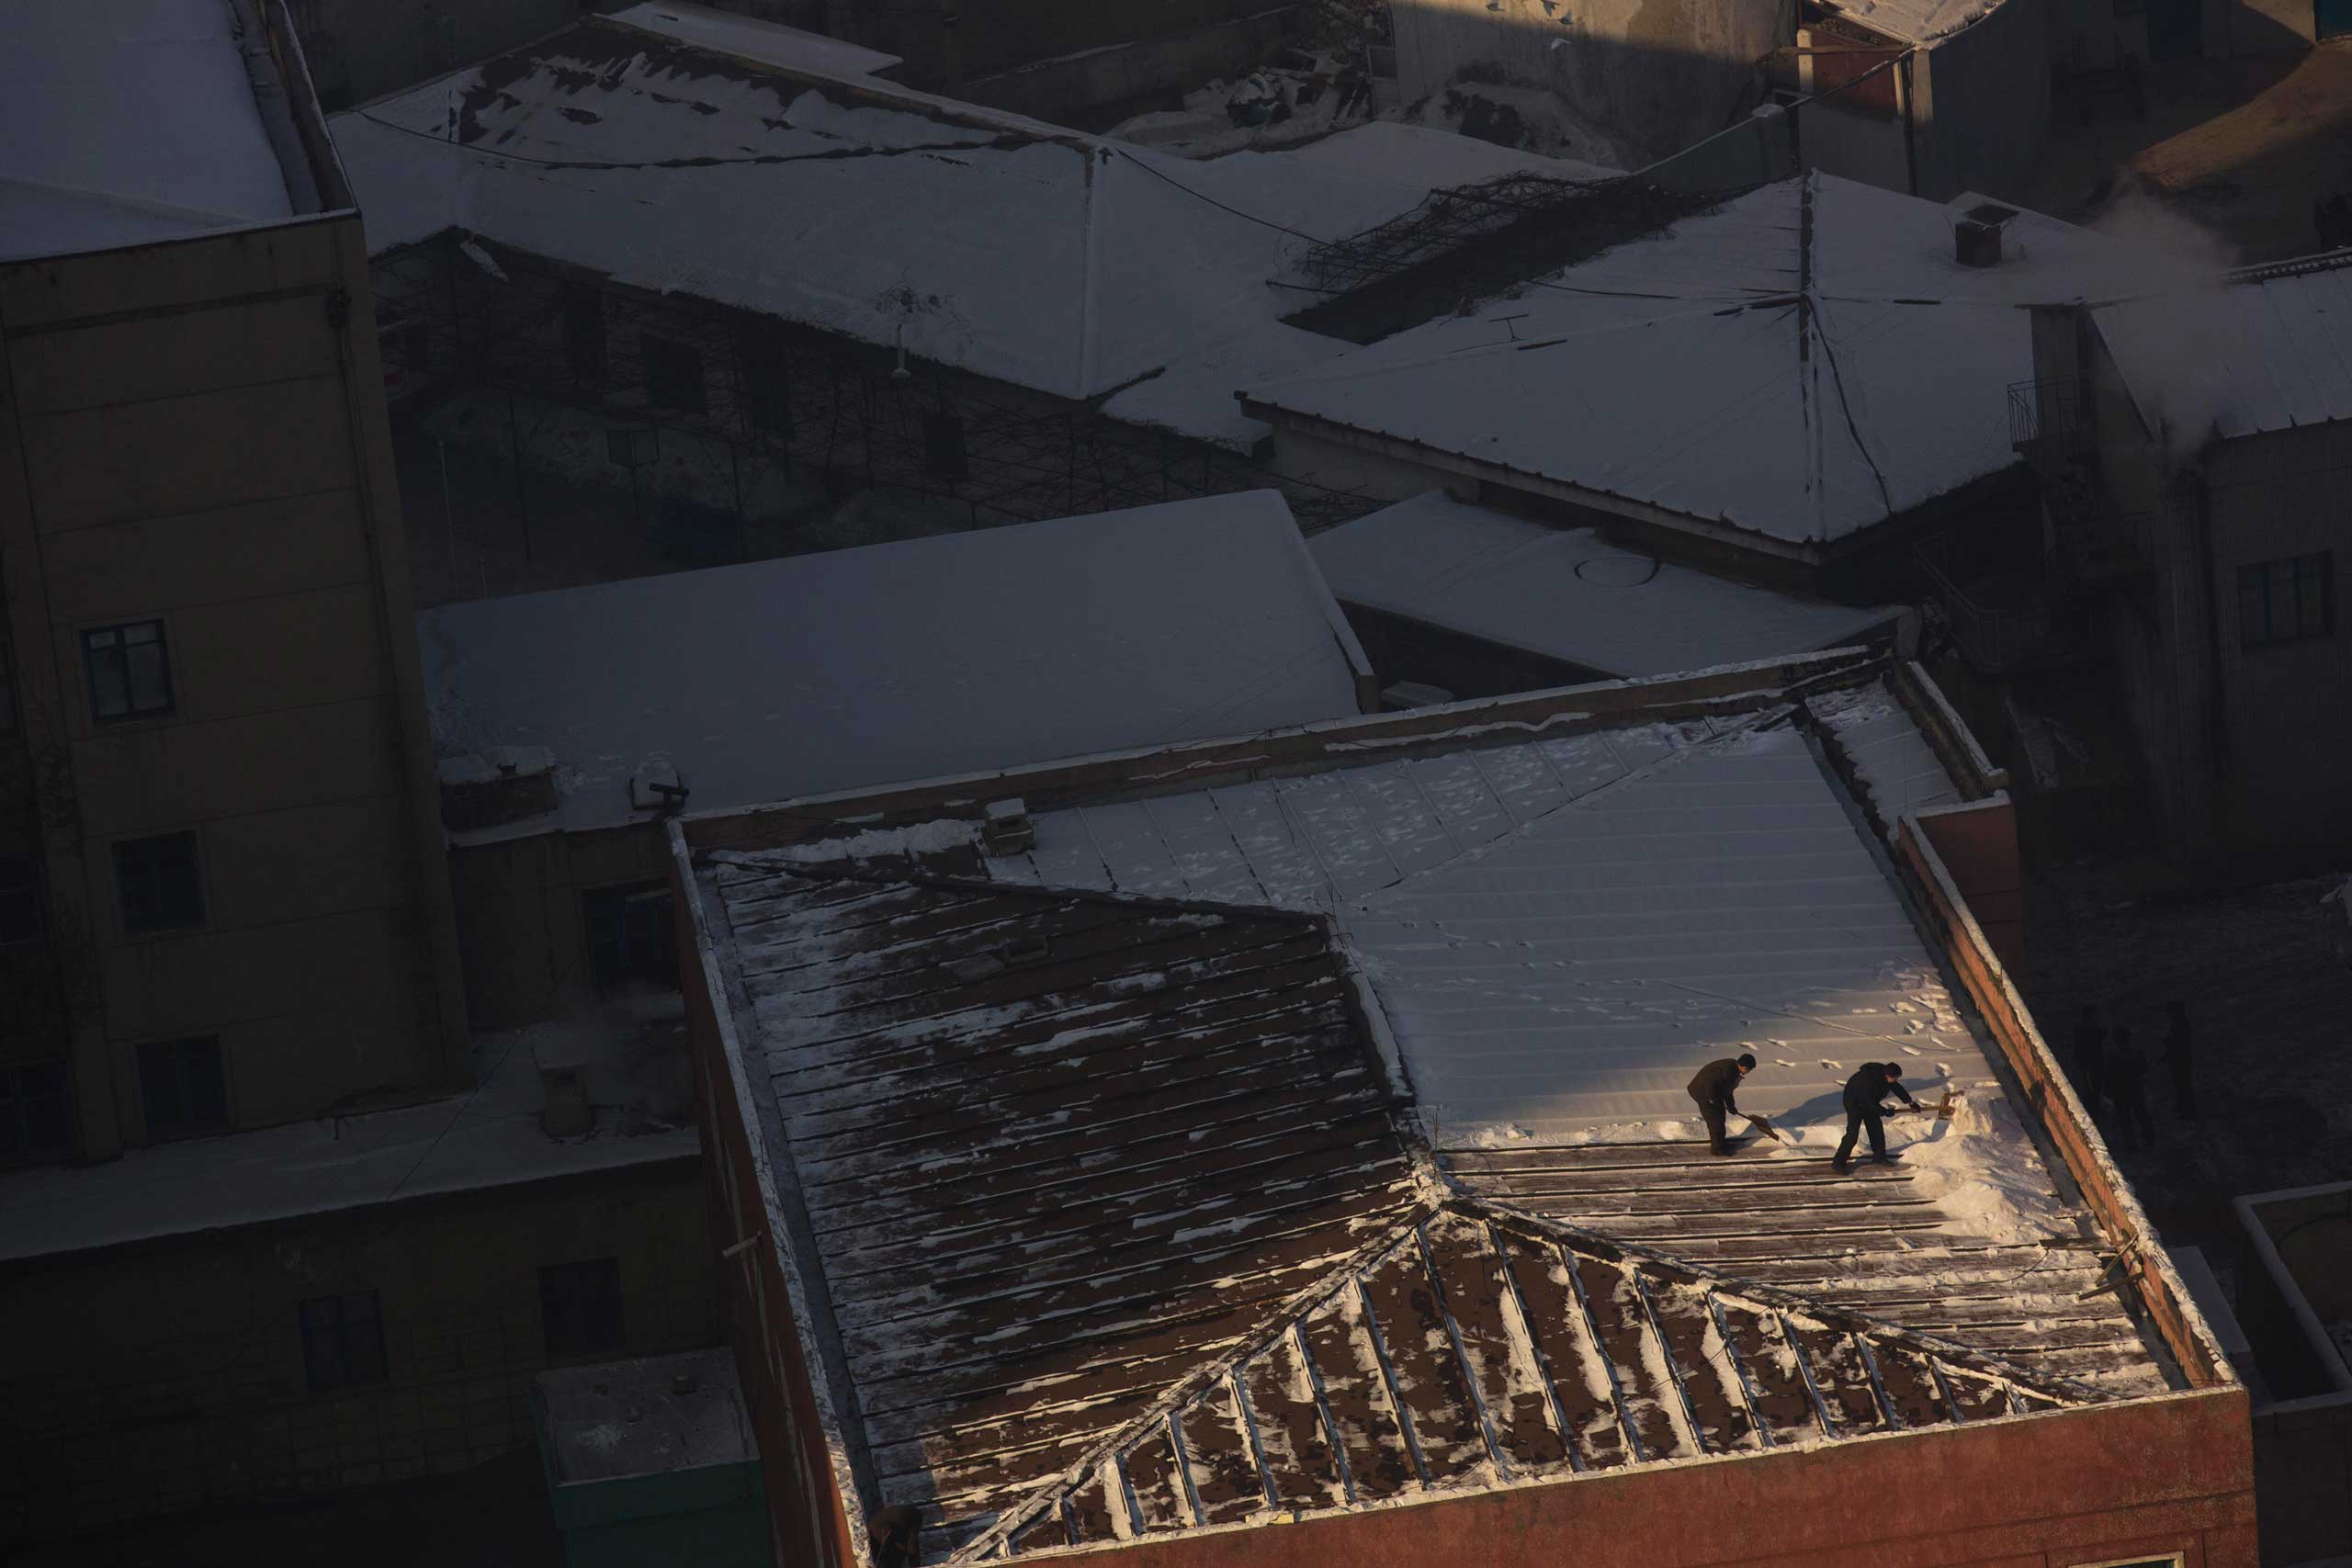 Jan. 10, 2013. North Korean men shovel snow from the roof of a building in Pyongyang, North Korea.